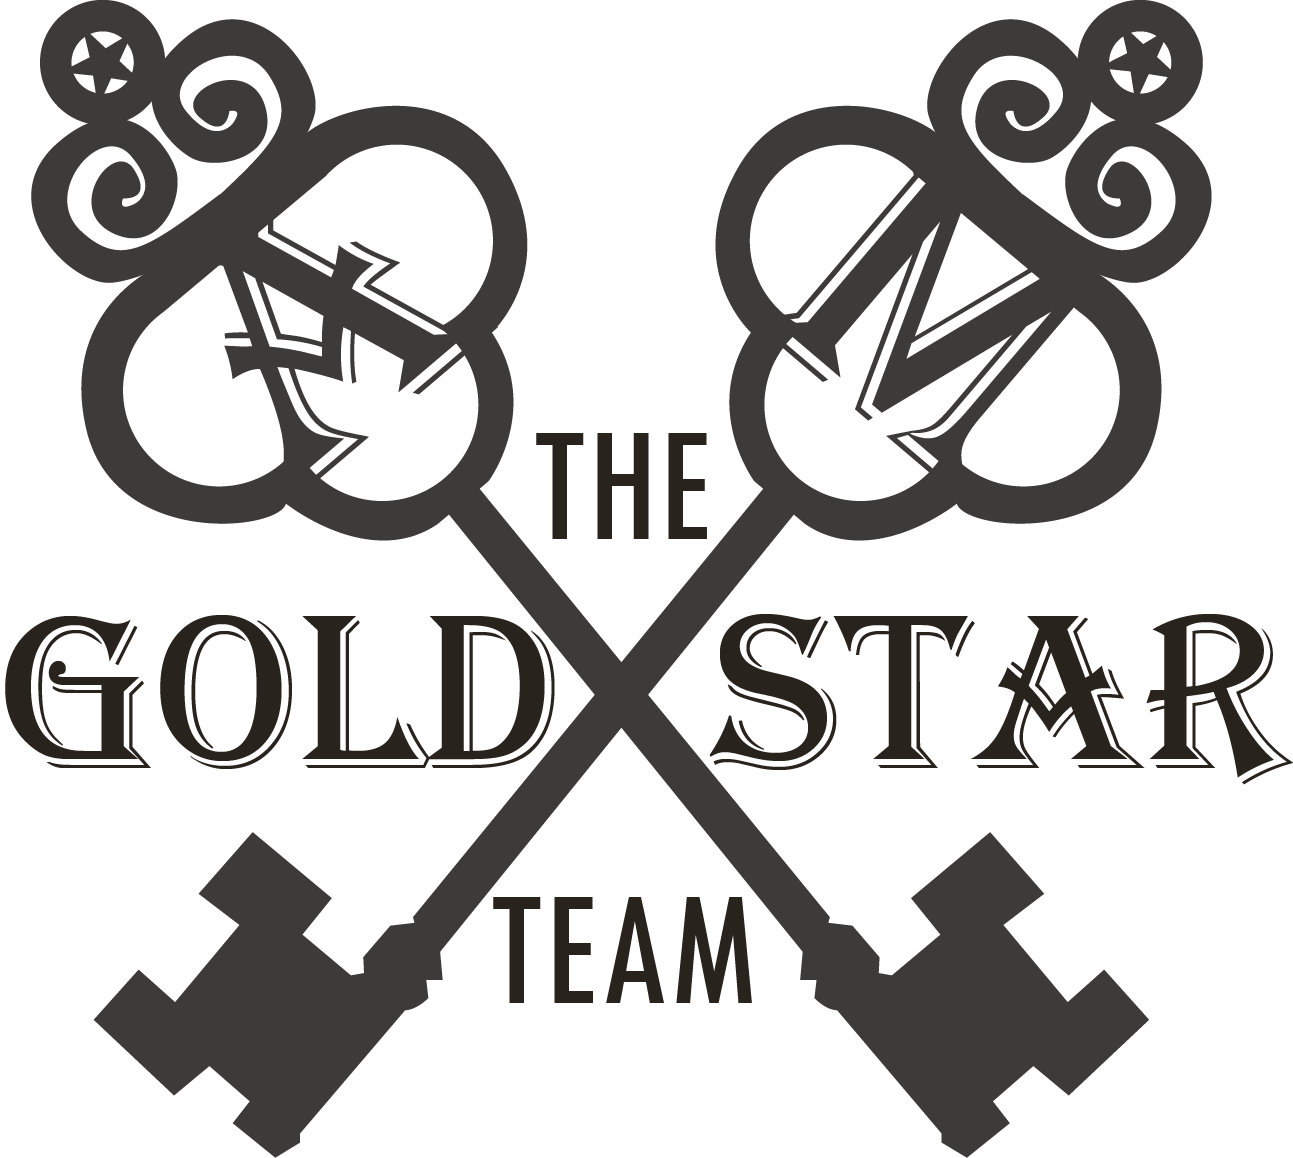 The Gold Star Team